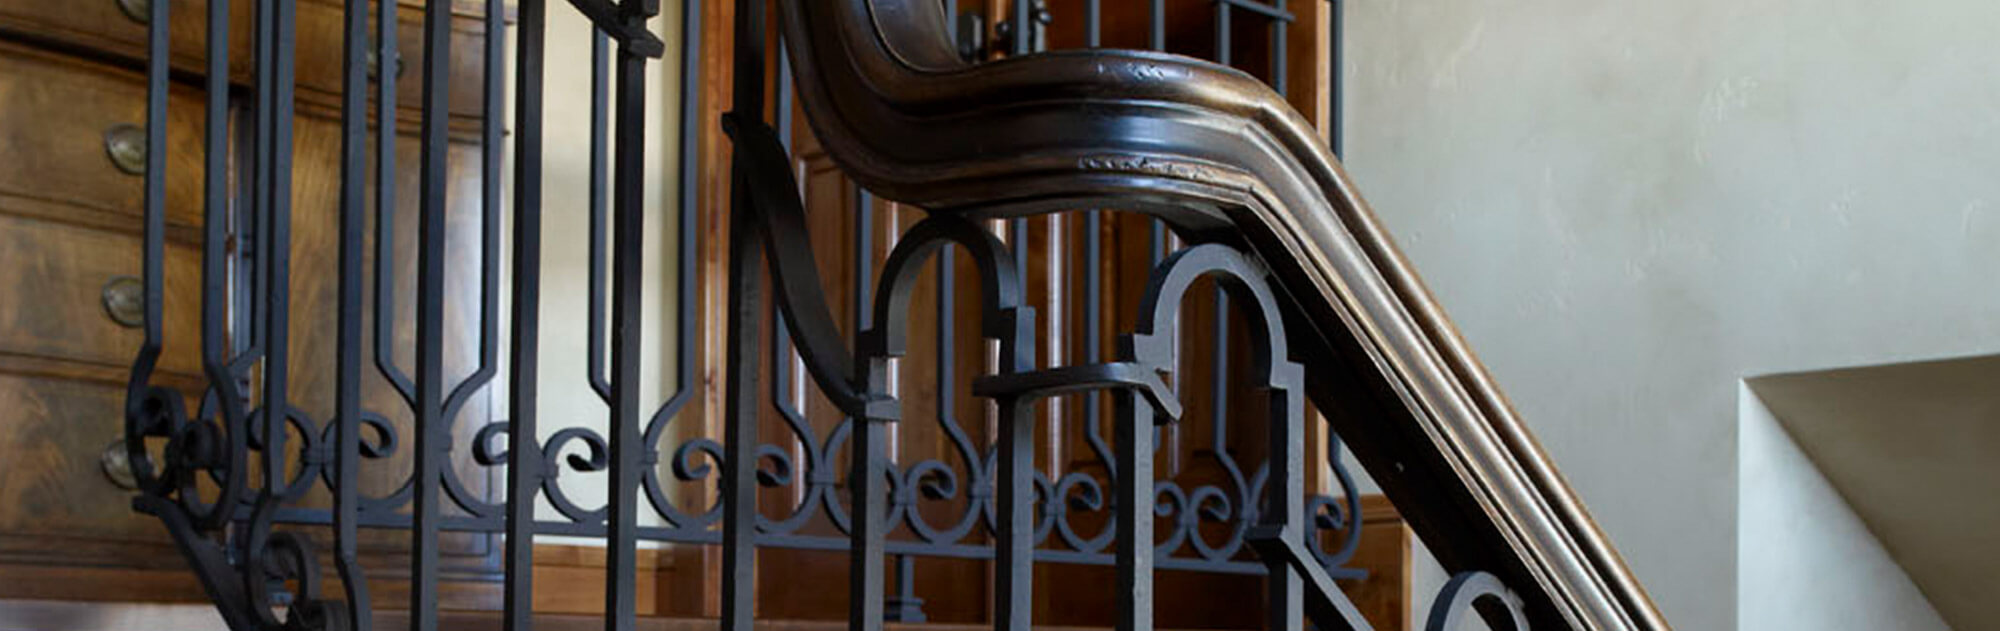 Close up of a custom stair railing with wood accents and black wrought iron scroll balusters